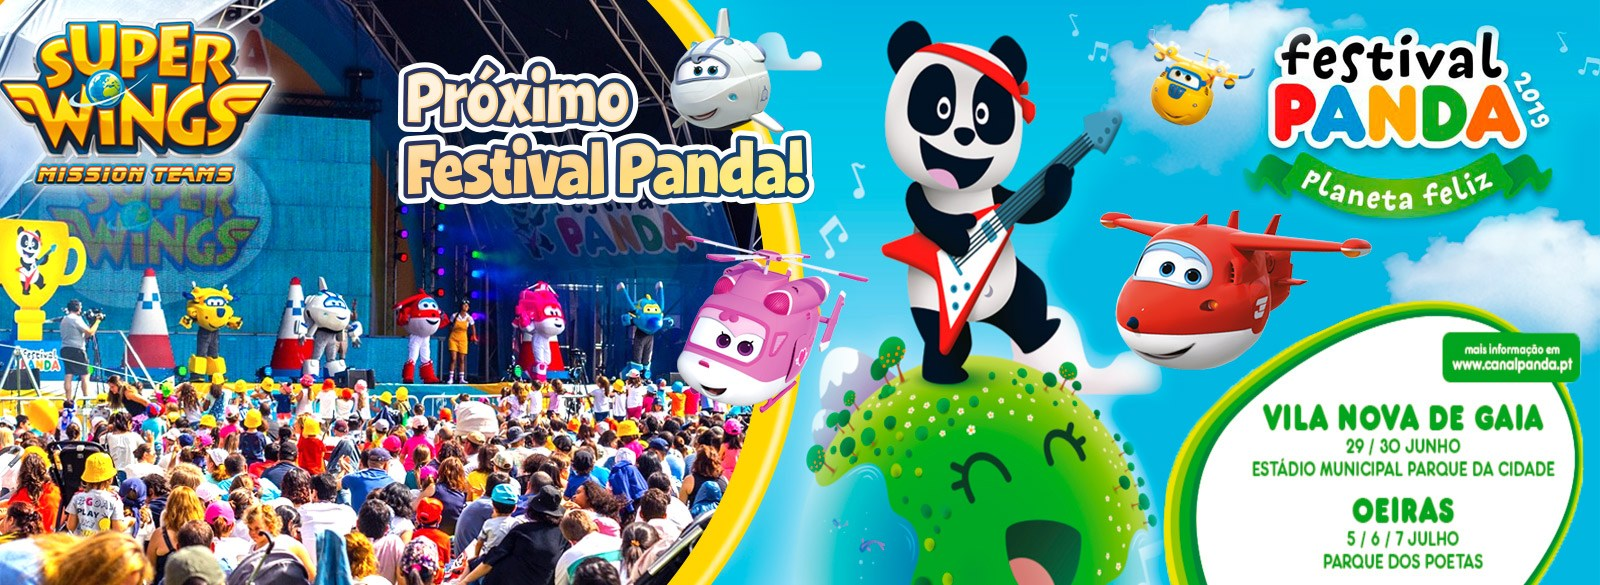 Super Wings Festival Panda